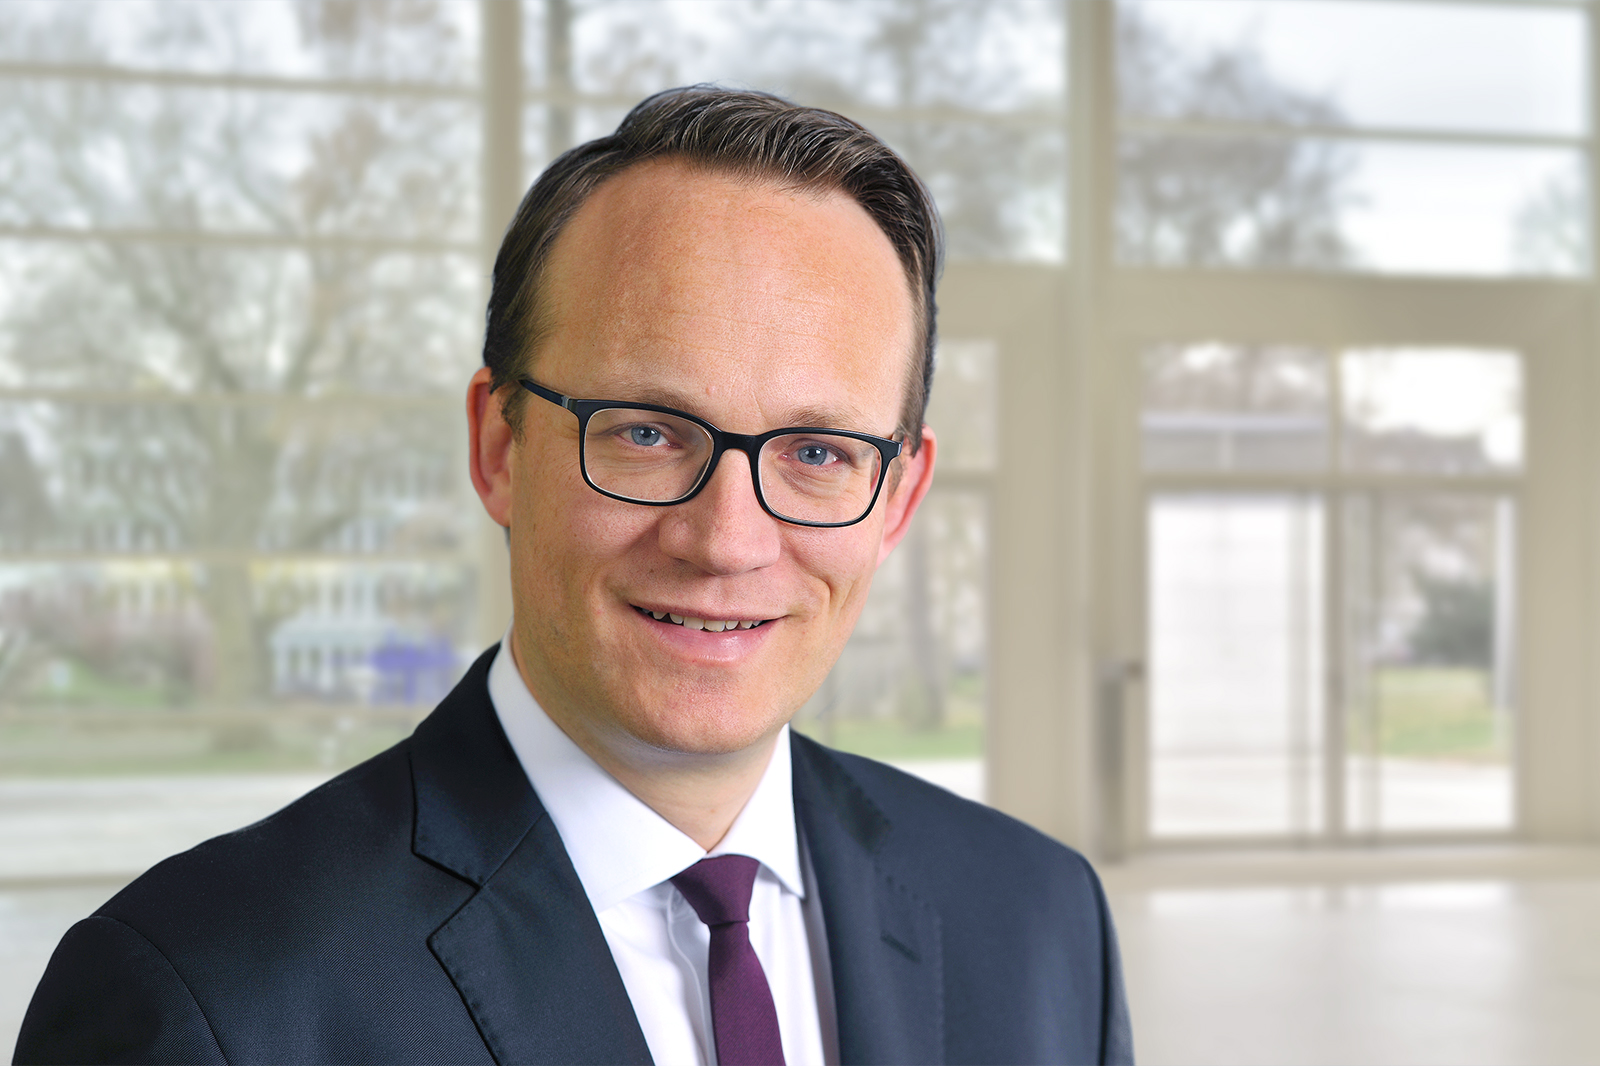 Krebber (pictured) said buying existing assets would only have a limited contribution to global decarbonisation efforts. Image: RWE.